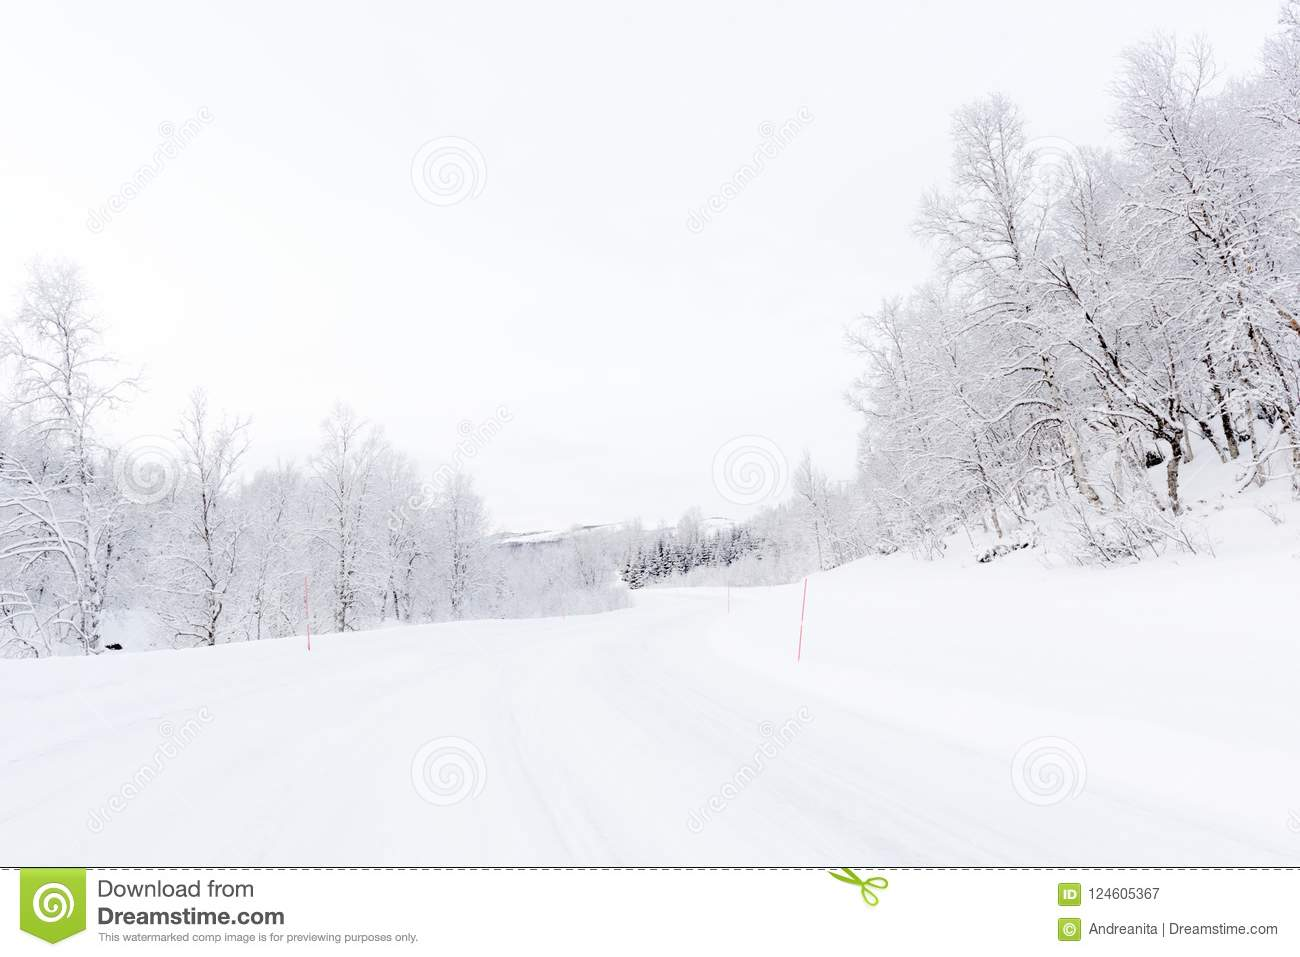 Arctic road with snowcovered forest